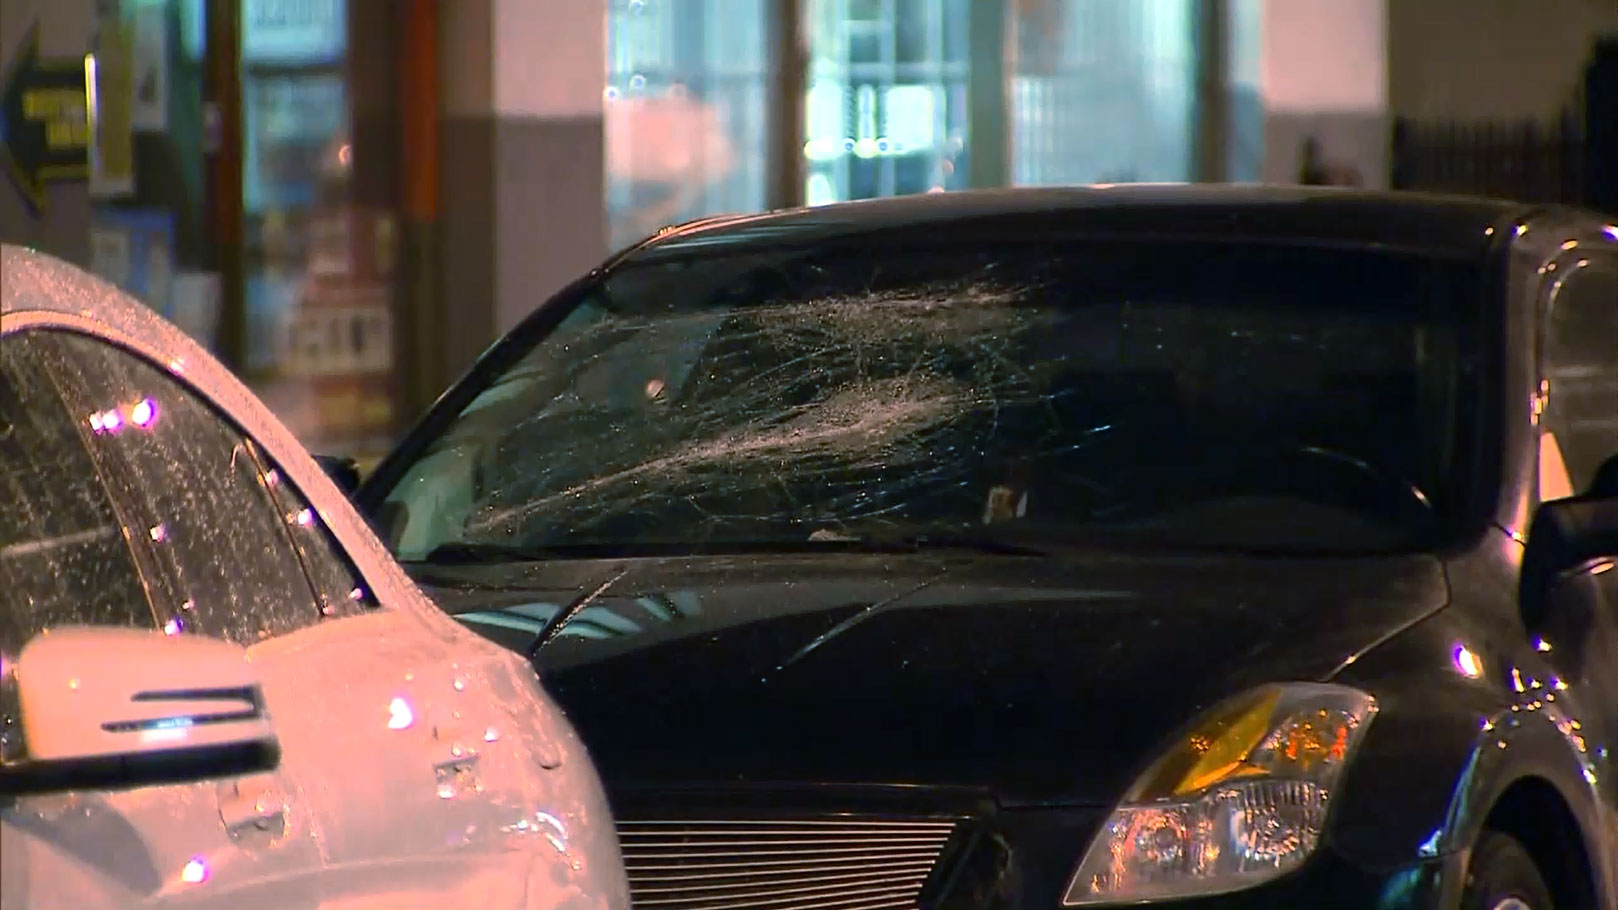 Damage is seen to a car after shots were fired and the windshield was smashed in Parkdale on Feb. 23, 2018. CITYNEWS